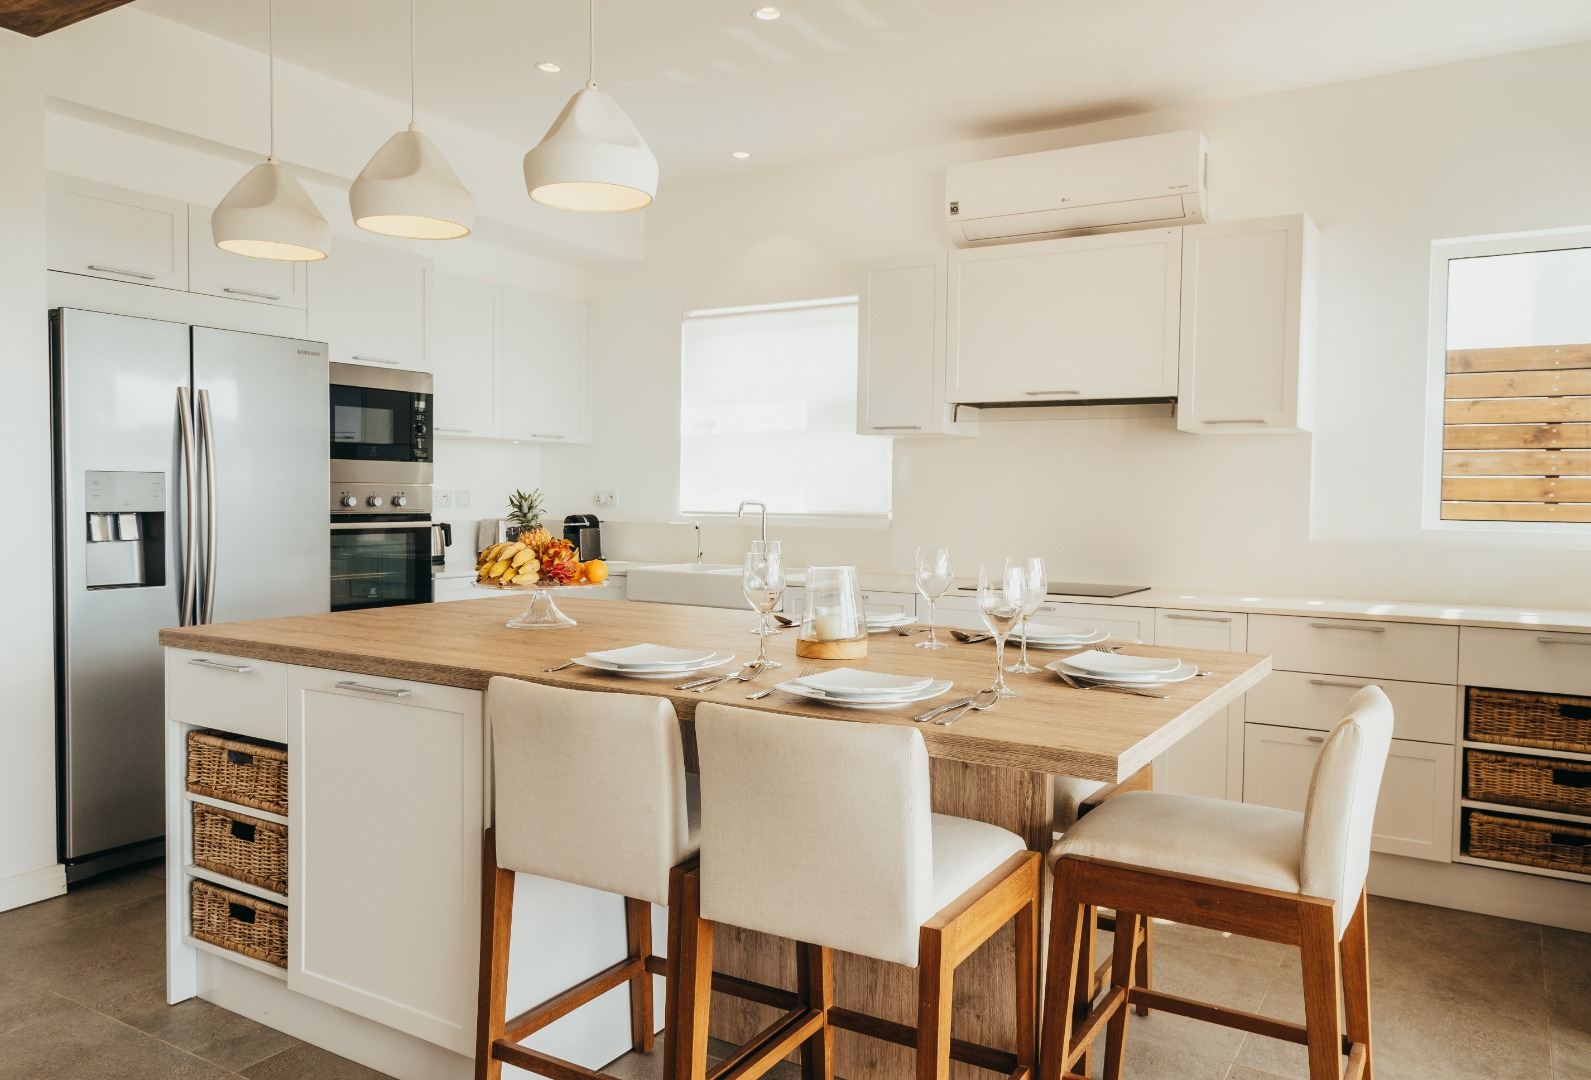 3 Bedroom Apartment / Flat For Sale in Goodlands